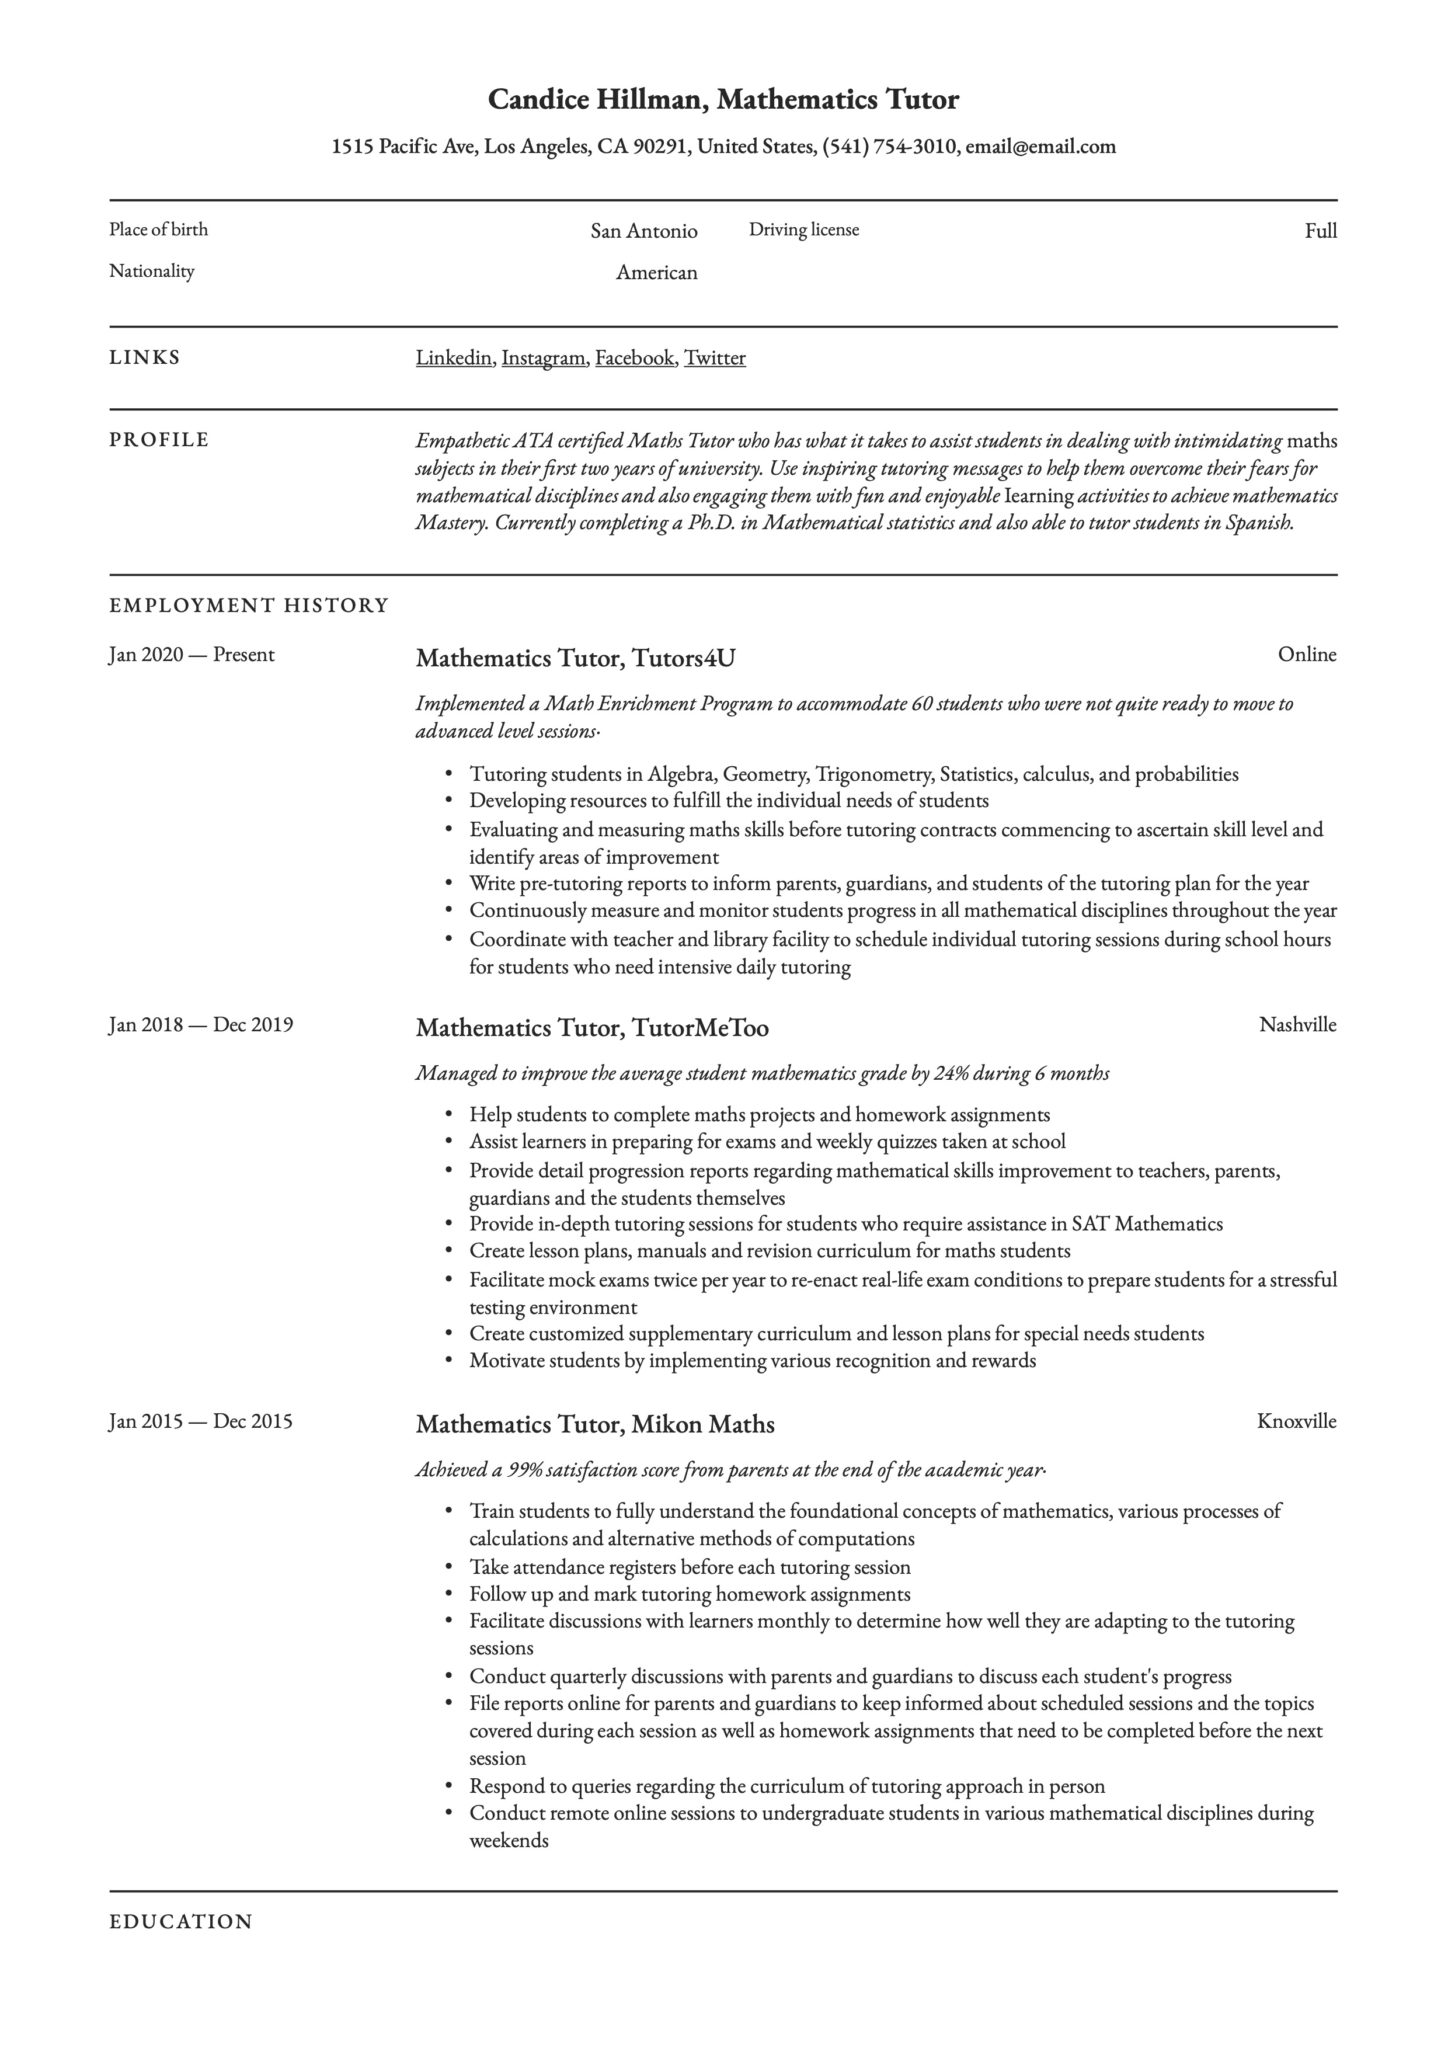 mathematics tutor resume writing guide examples description scaled for short process Resume Tutor Resume Description